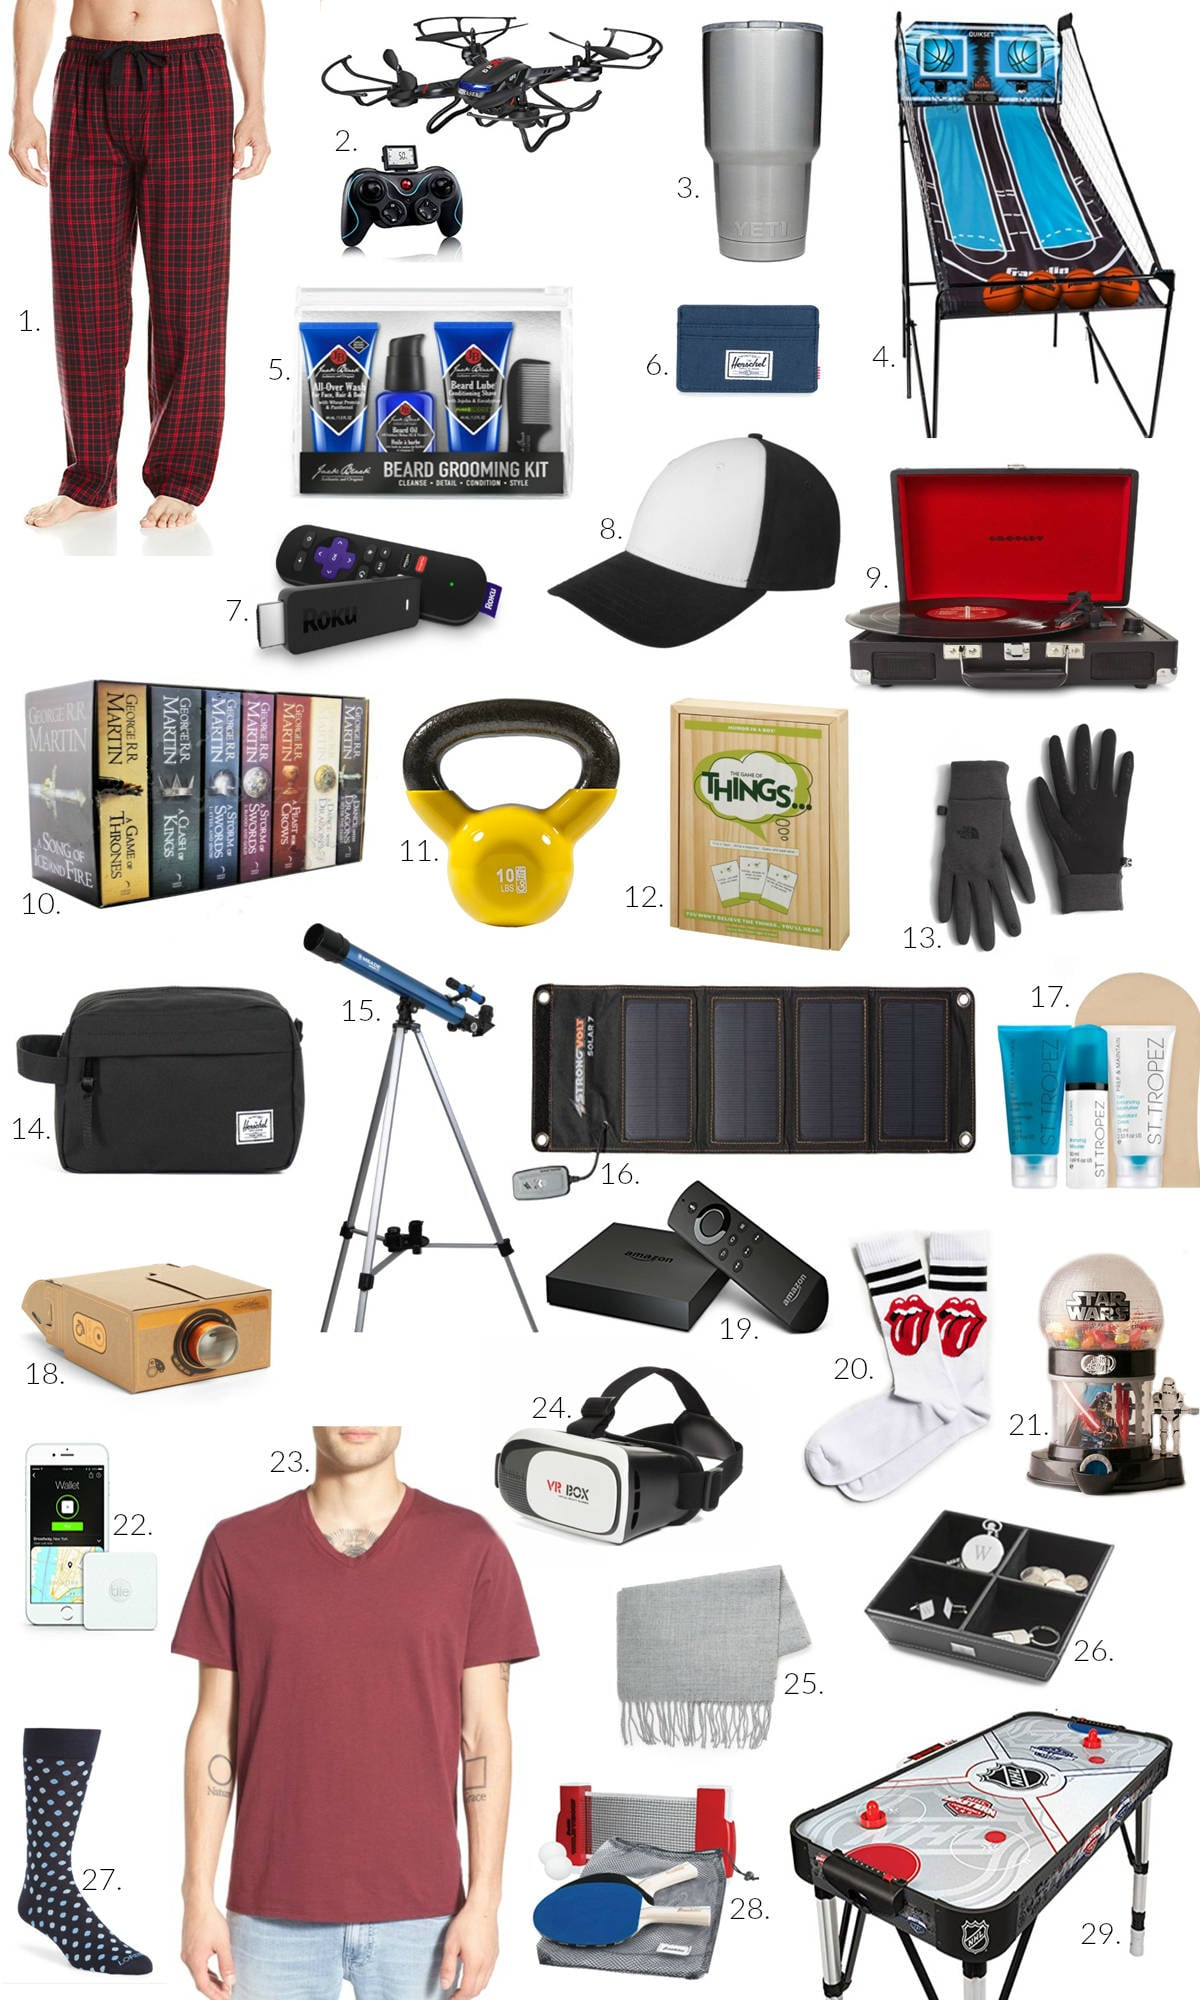 best gifts for men stocking stuffers for teenage boys sports gifts for men